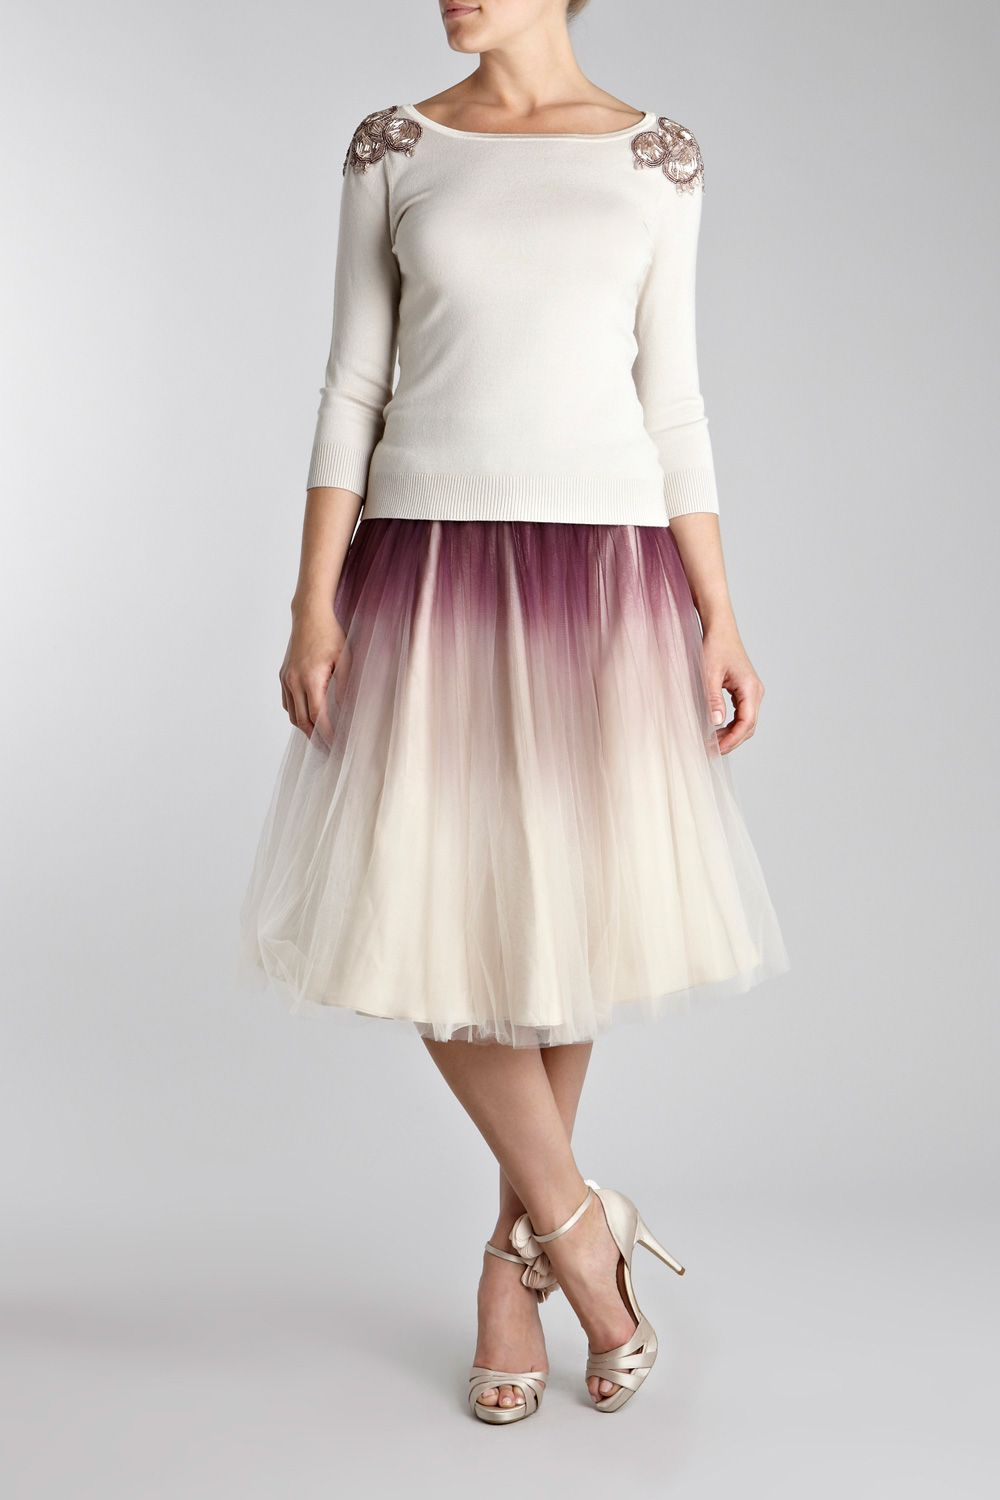 This is a modern and chic full tulle dip dye skirt style i like